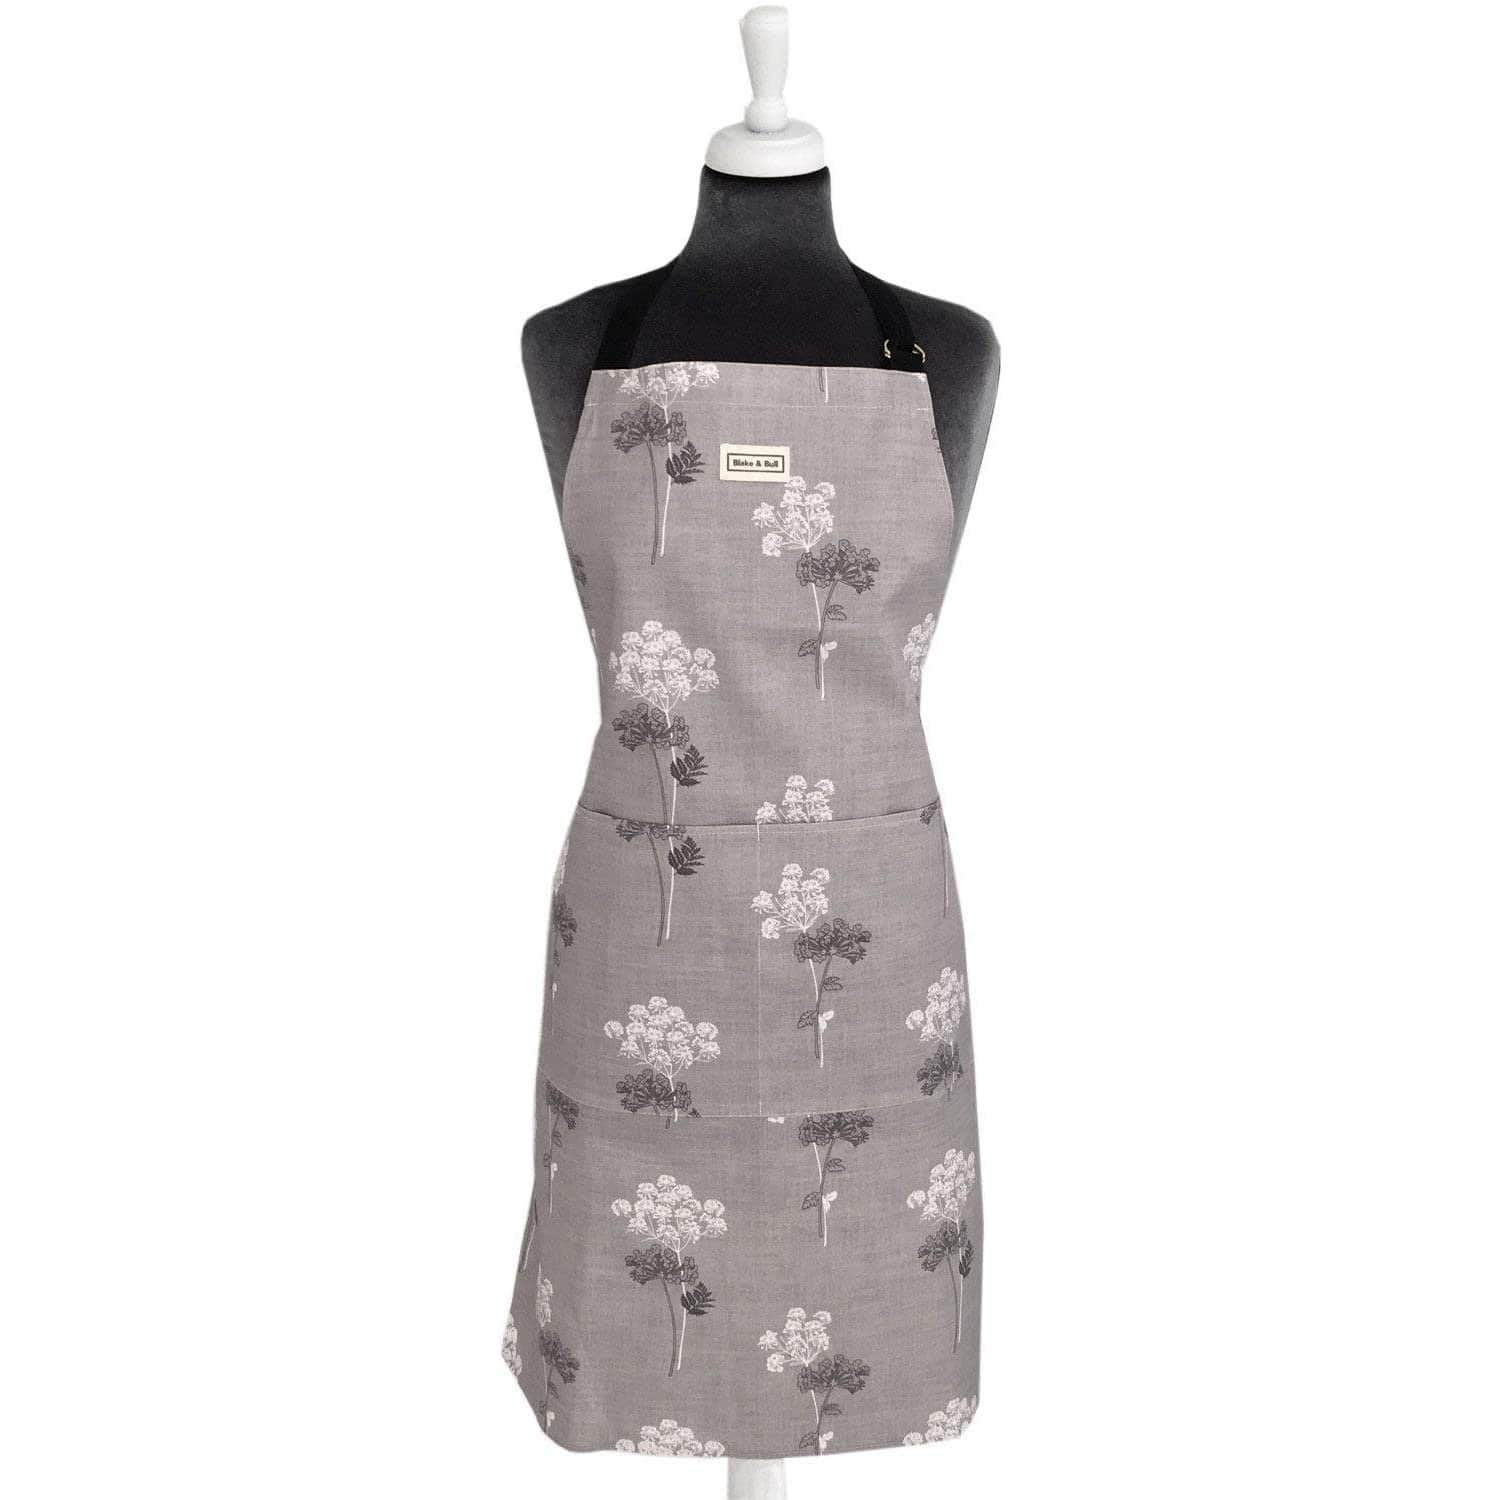 *Not quite perfect* Apron - 'Cow Parsley'